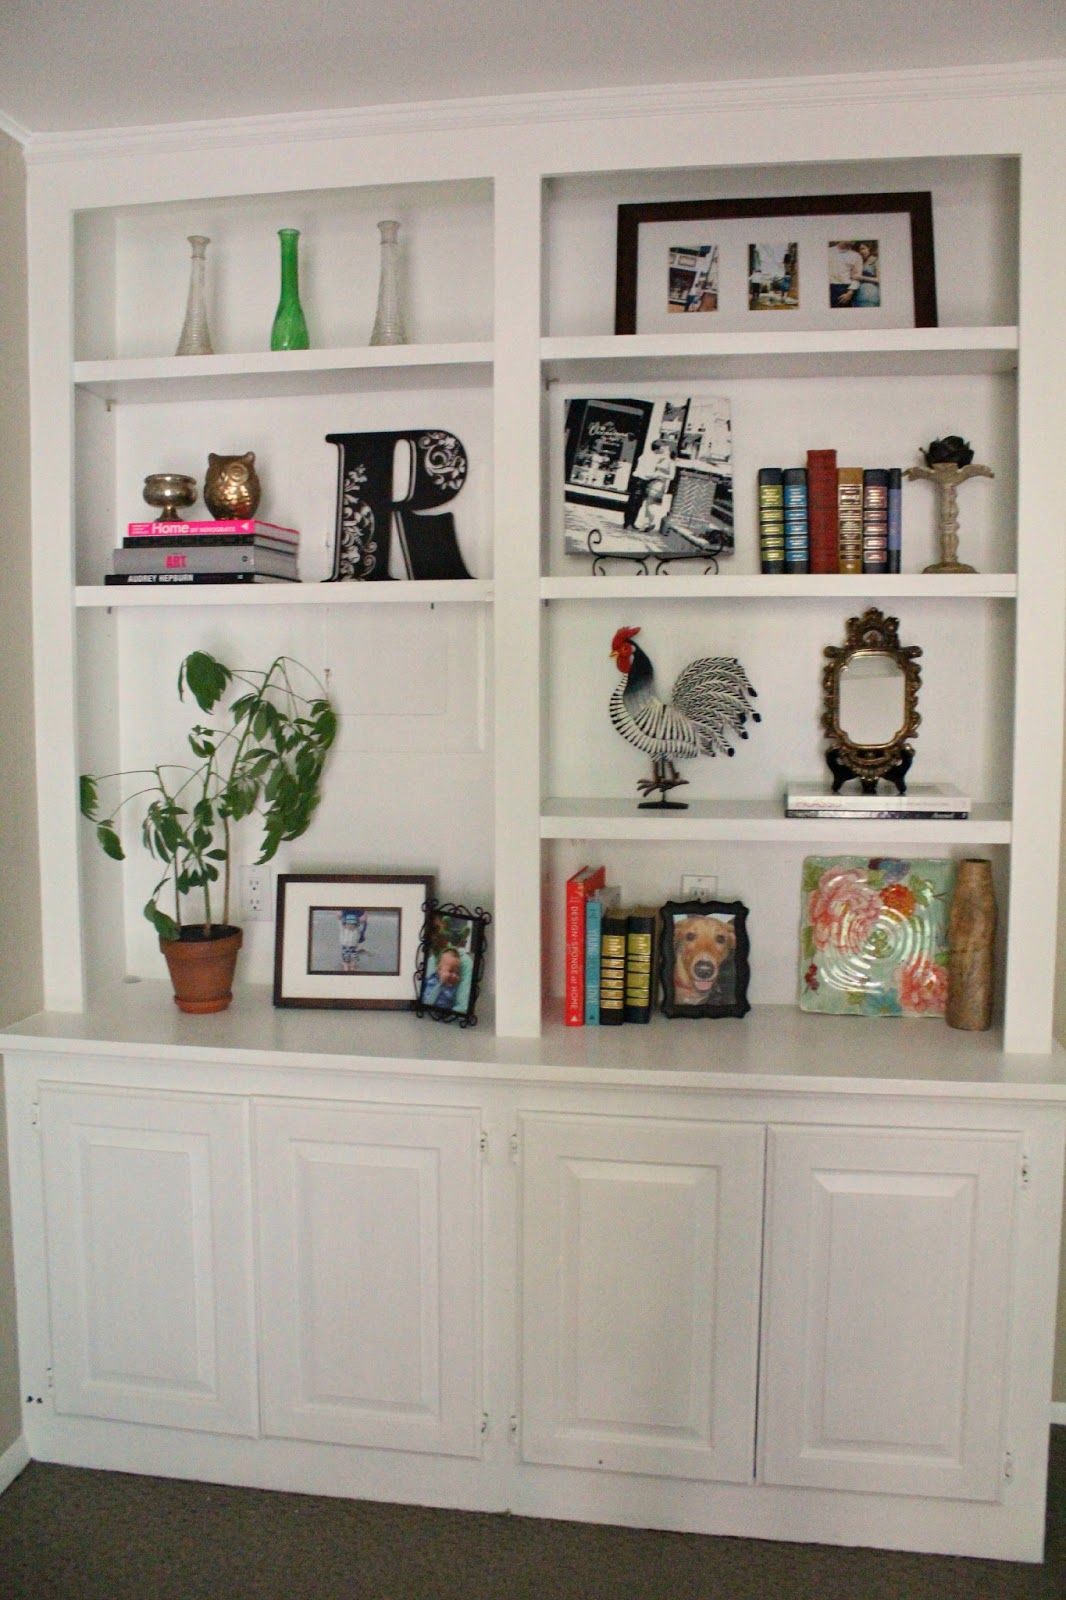 Bookshelf Decorating Ideas | Book shelves, Shelves and Living rooms